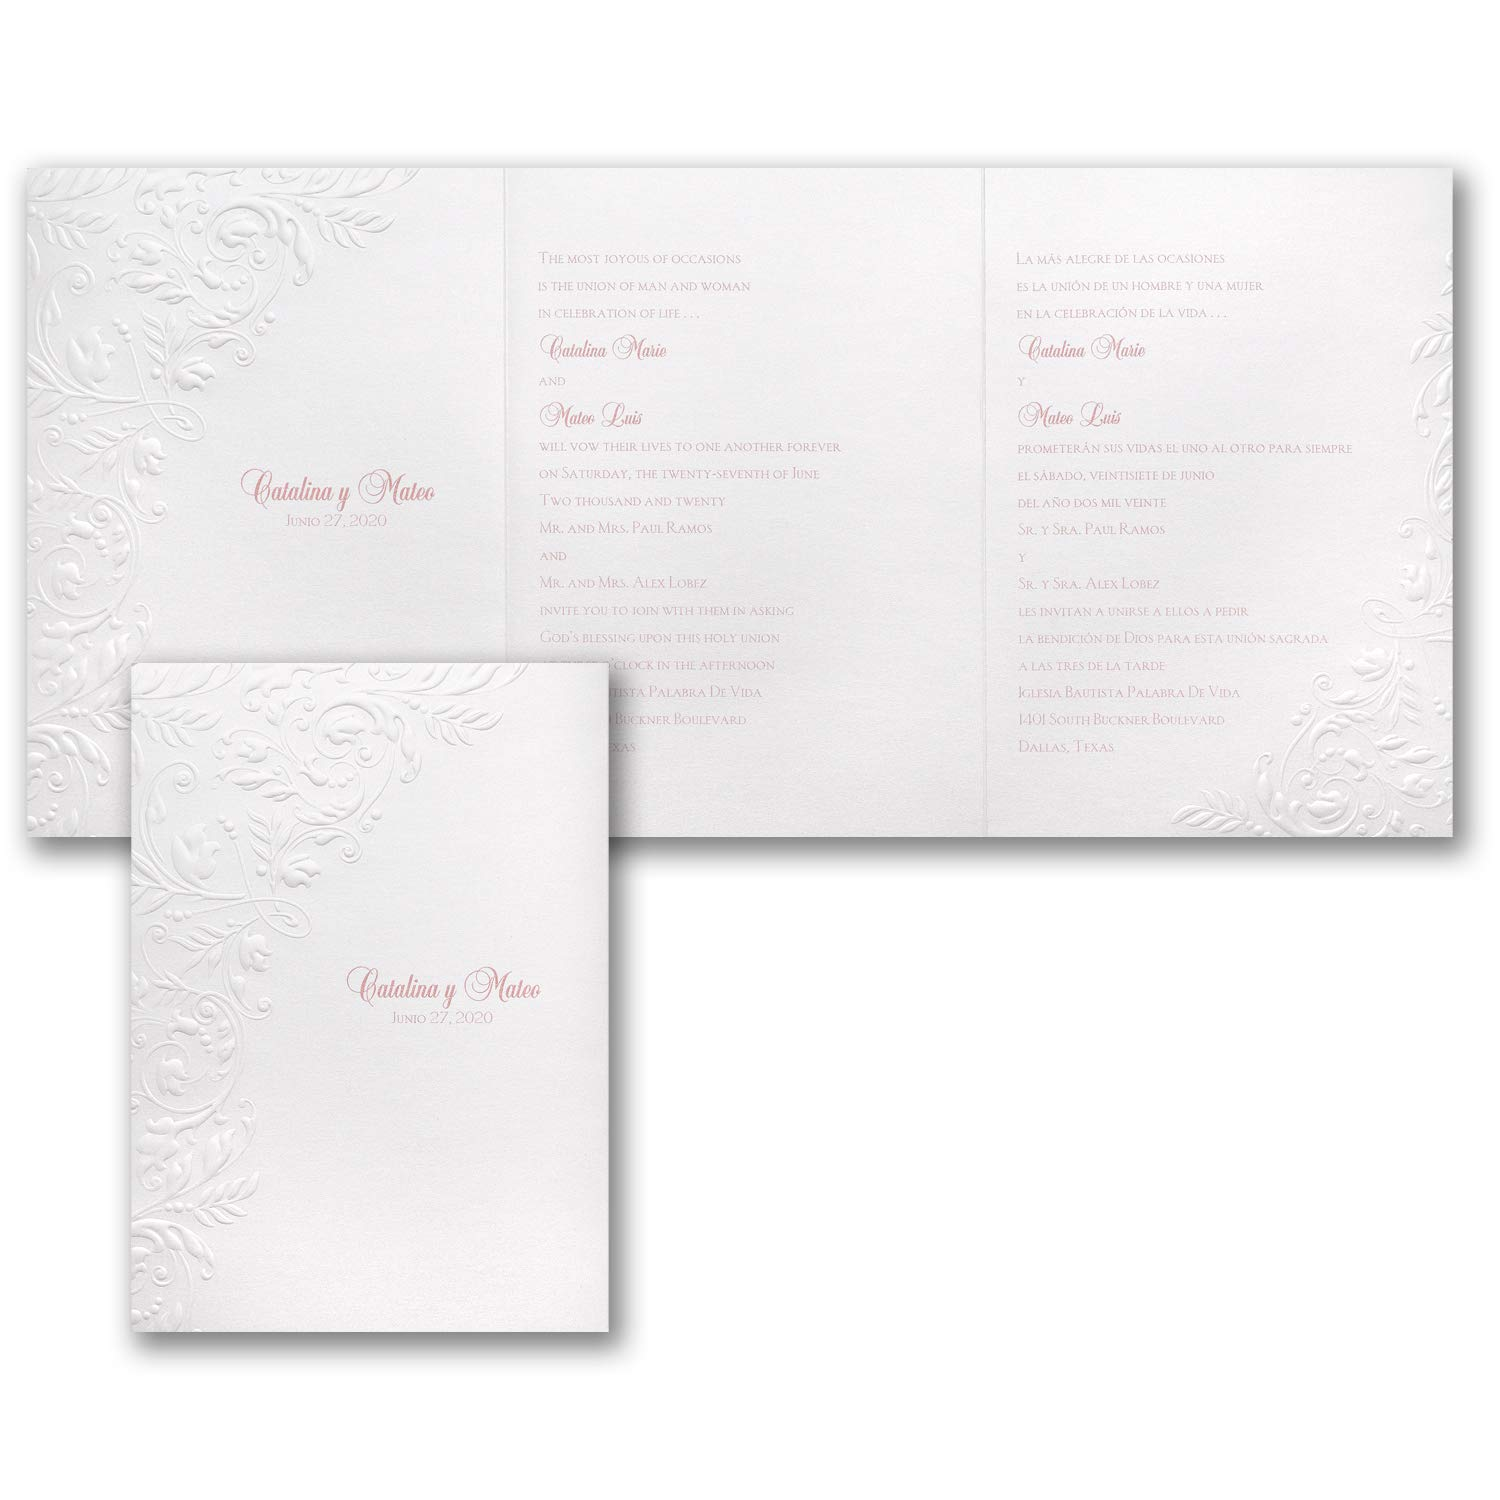 Amazon.com: 725pk Botanical Flourish - Invitation-Spanish ...